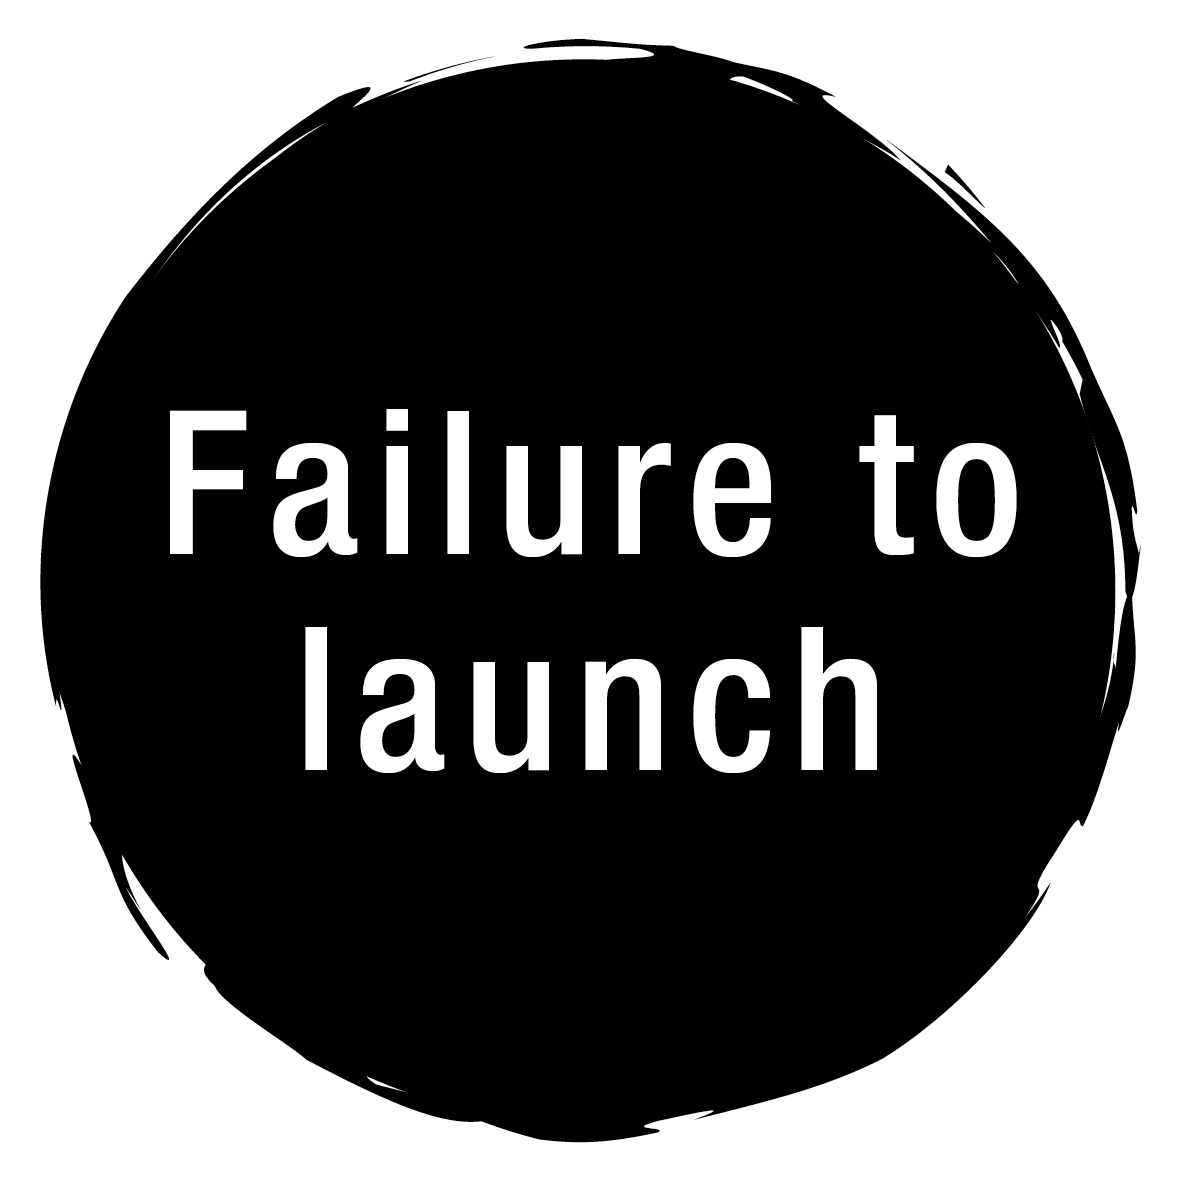 Let's launch your new business!   You want to set up a new business but don't know where to start or lack the time to do what you know needs to be done. I can help you to register, brand, establish and market.